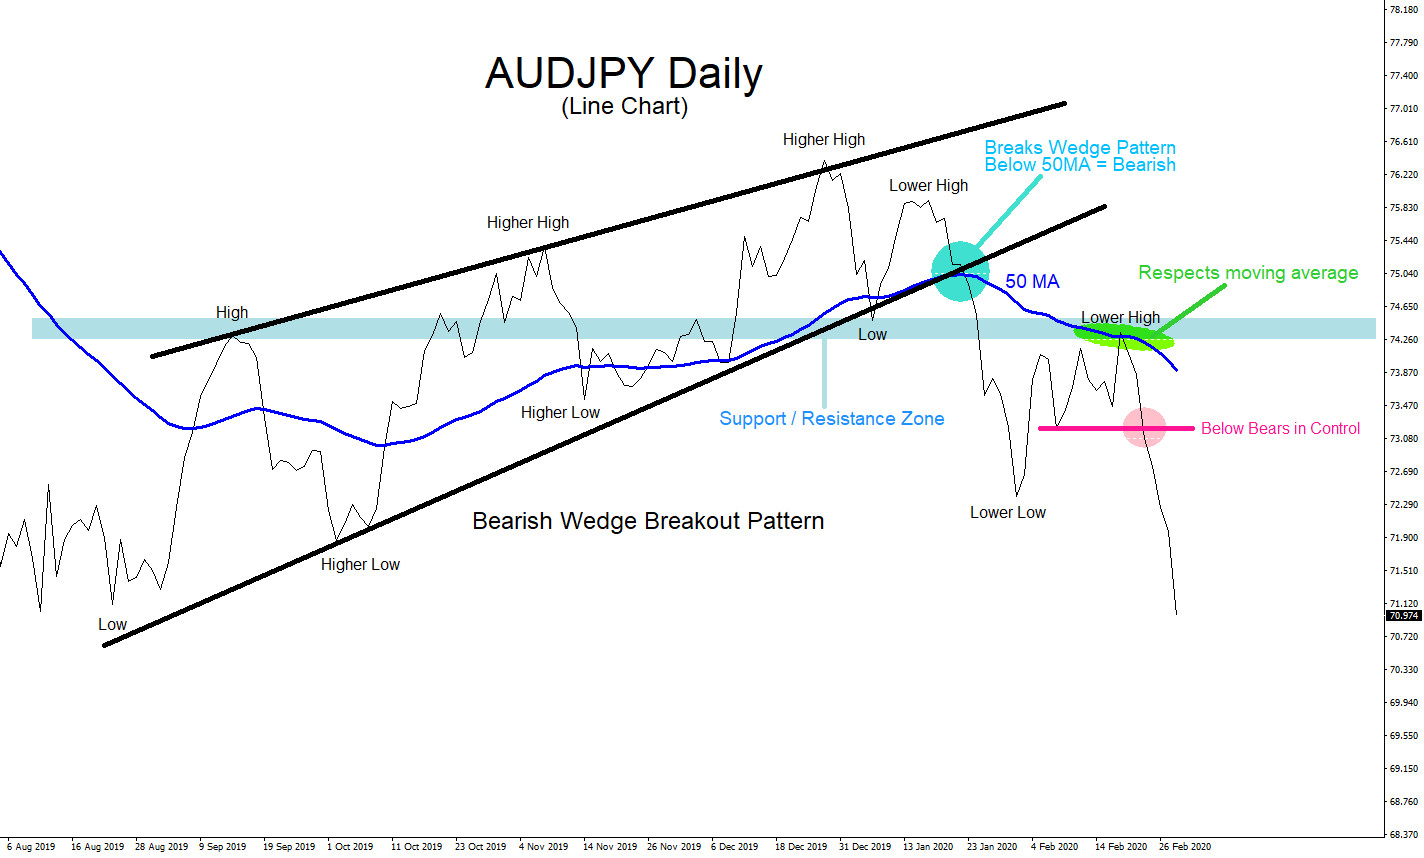 AUDJPY : Multiple Time Frames to Identify a Trade Setup